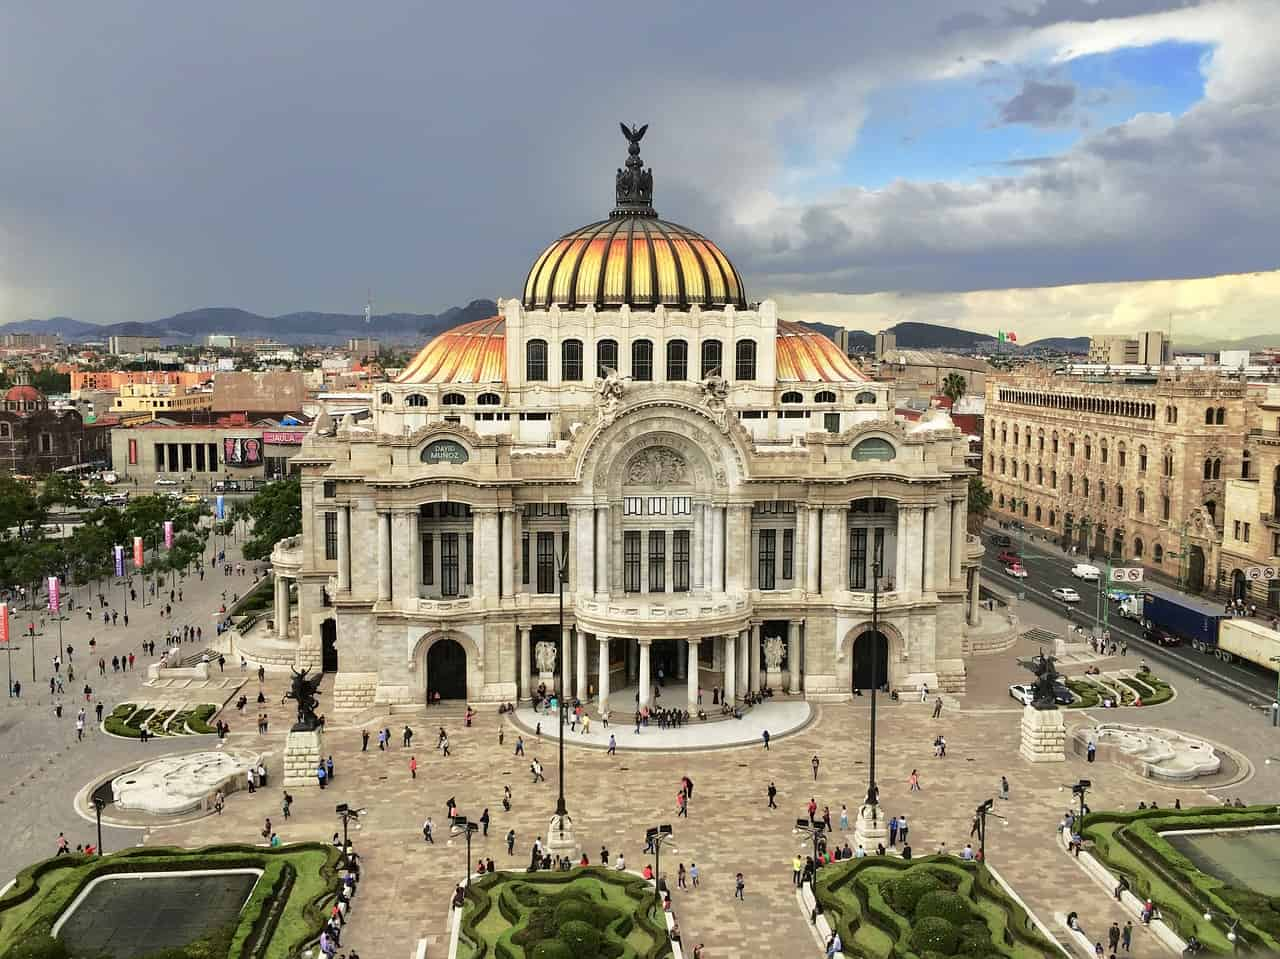 palace-of-fine-arts, Mexico City, UNESCO World Heritage Sites